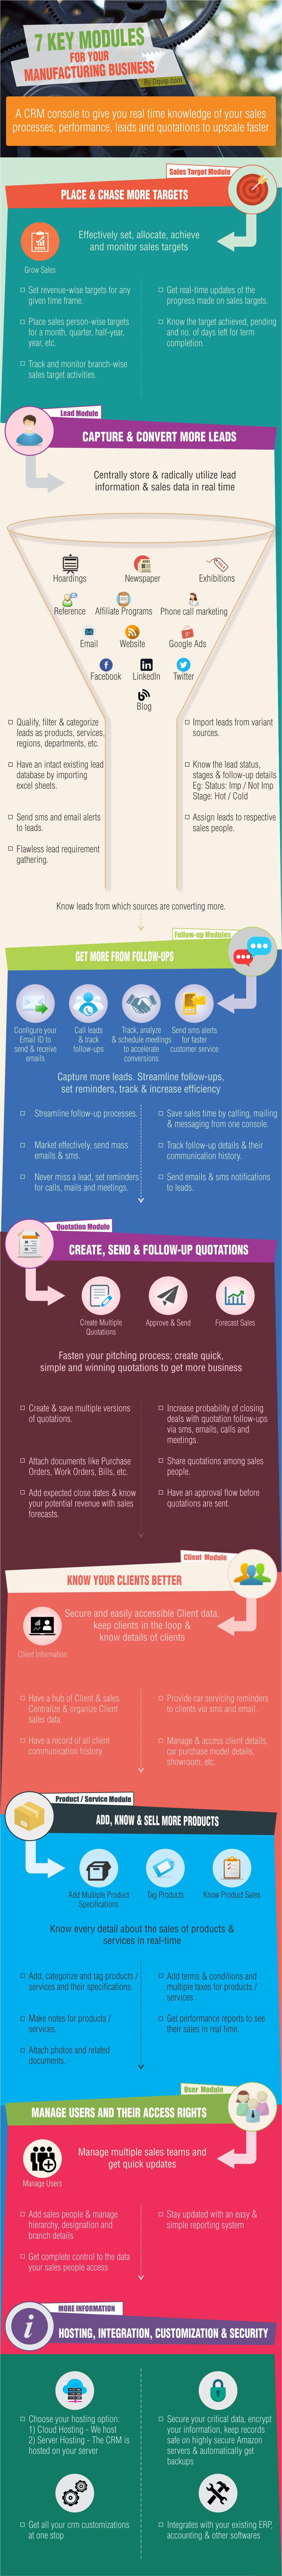 infographic on manufacturing crm features in a business flow